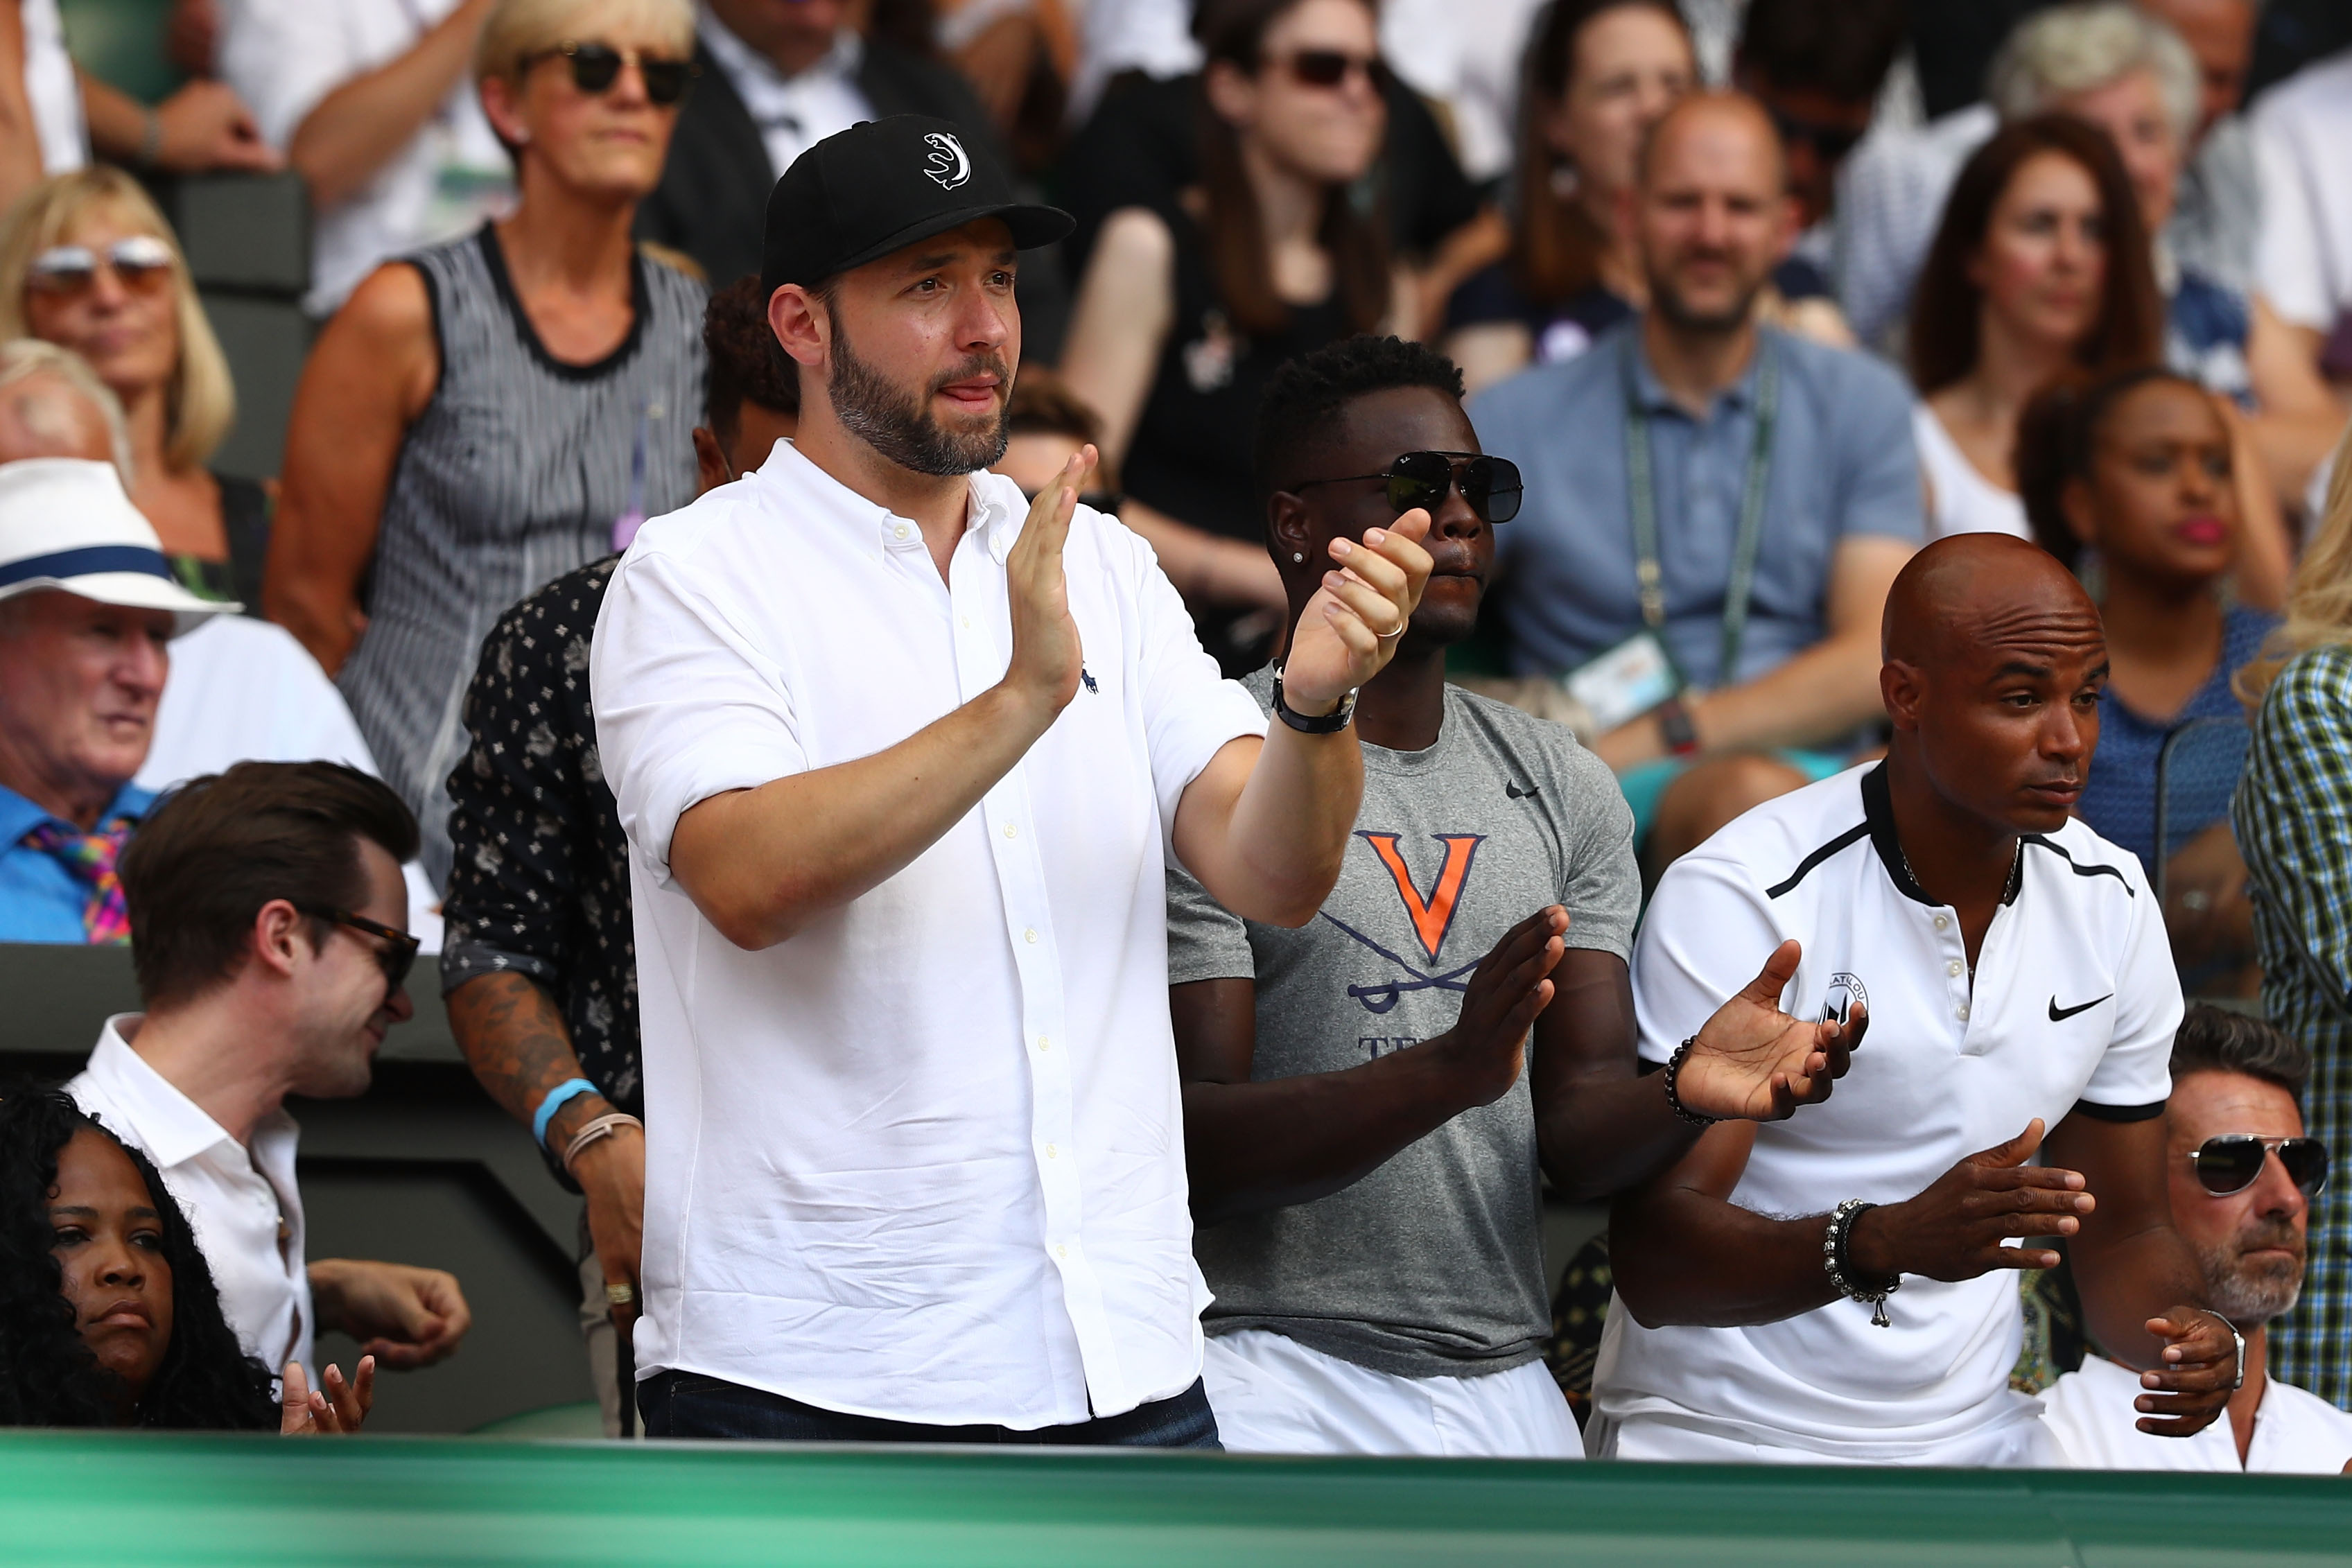 Alexis-Ohanian-Writes-An-Emotional-Tribute-To-His-Wife-Serena-Williams-After-Wimbledon-Loss-Shell-Win-Many-More-Trophies